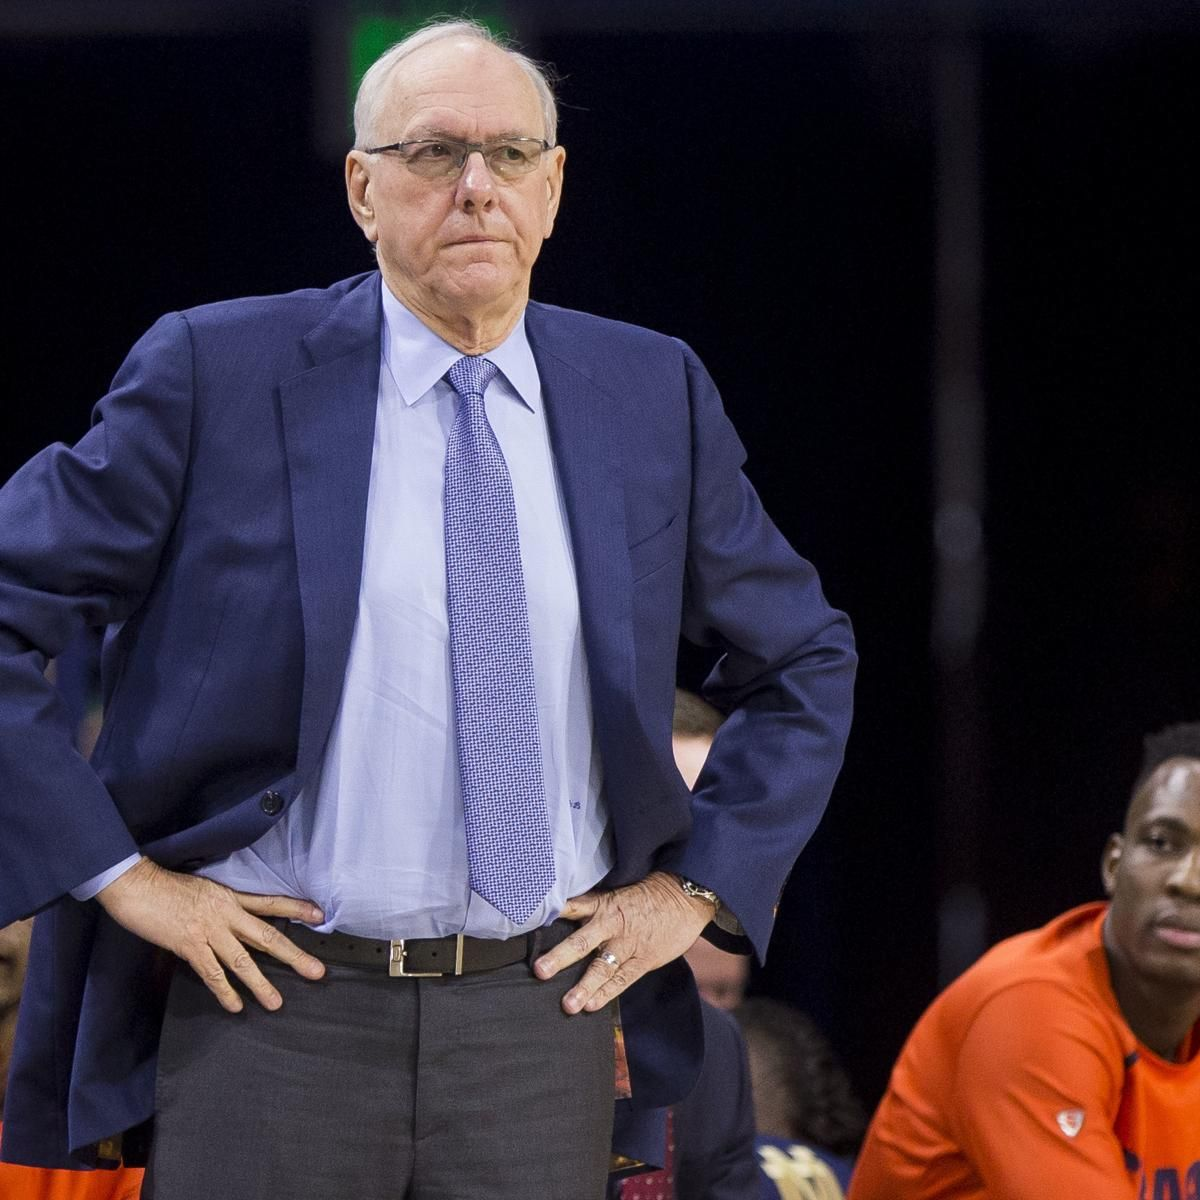 Jim Boeheim Struck Killed Man Walking Outside Vehicle On Interstate Bleacher Report Latest News Videos And Highlight Jim Boeheim Man Louisville Cardinals